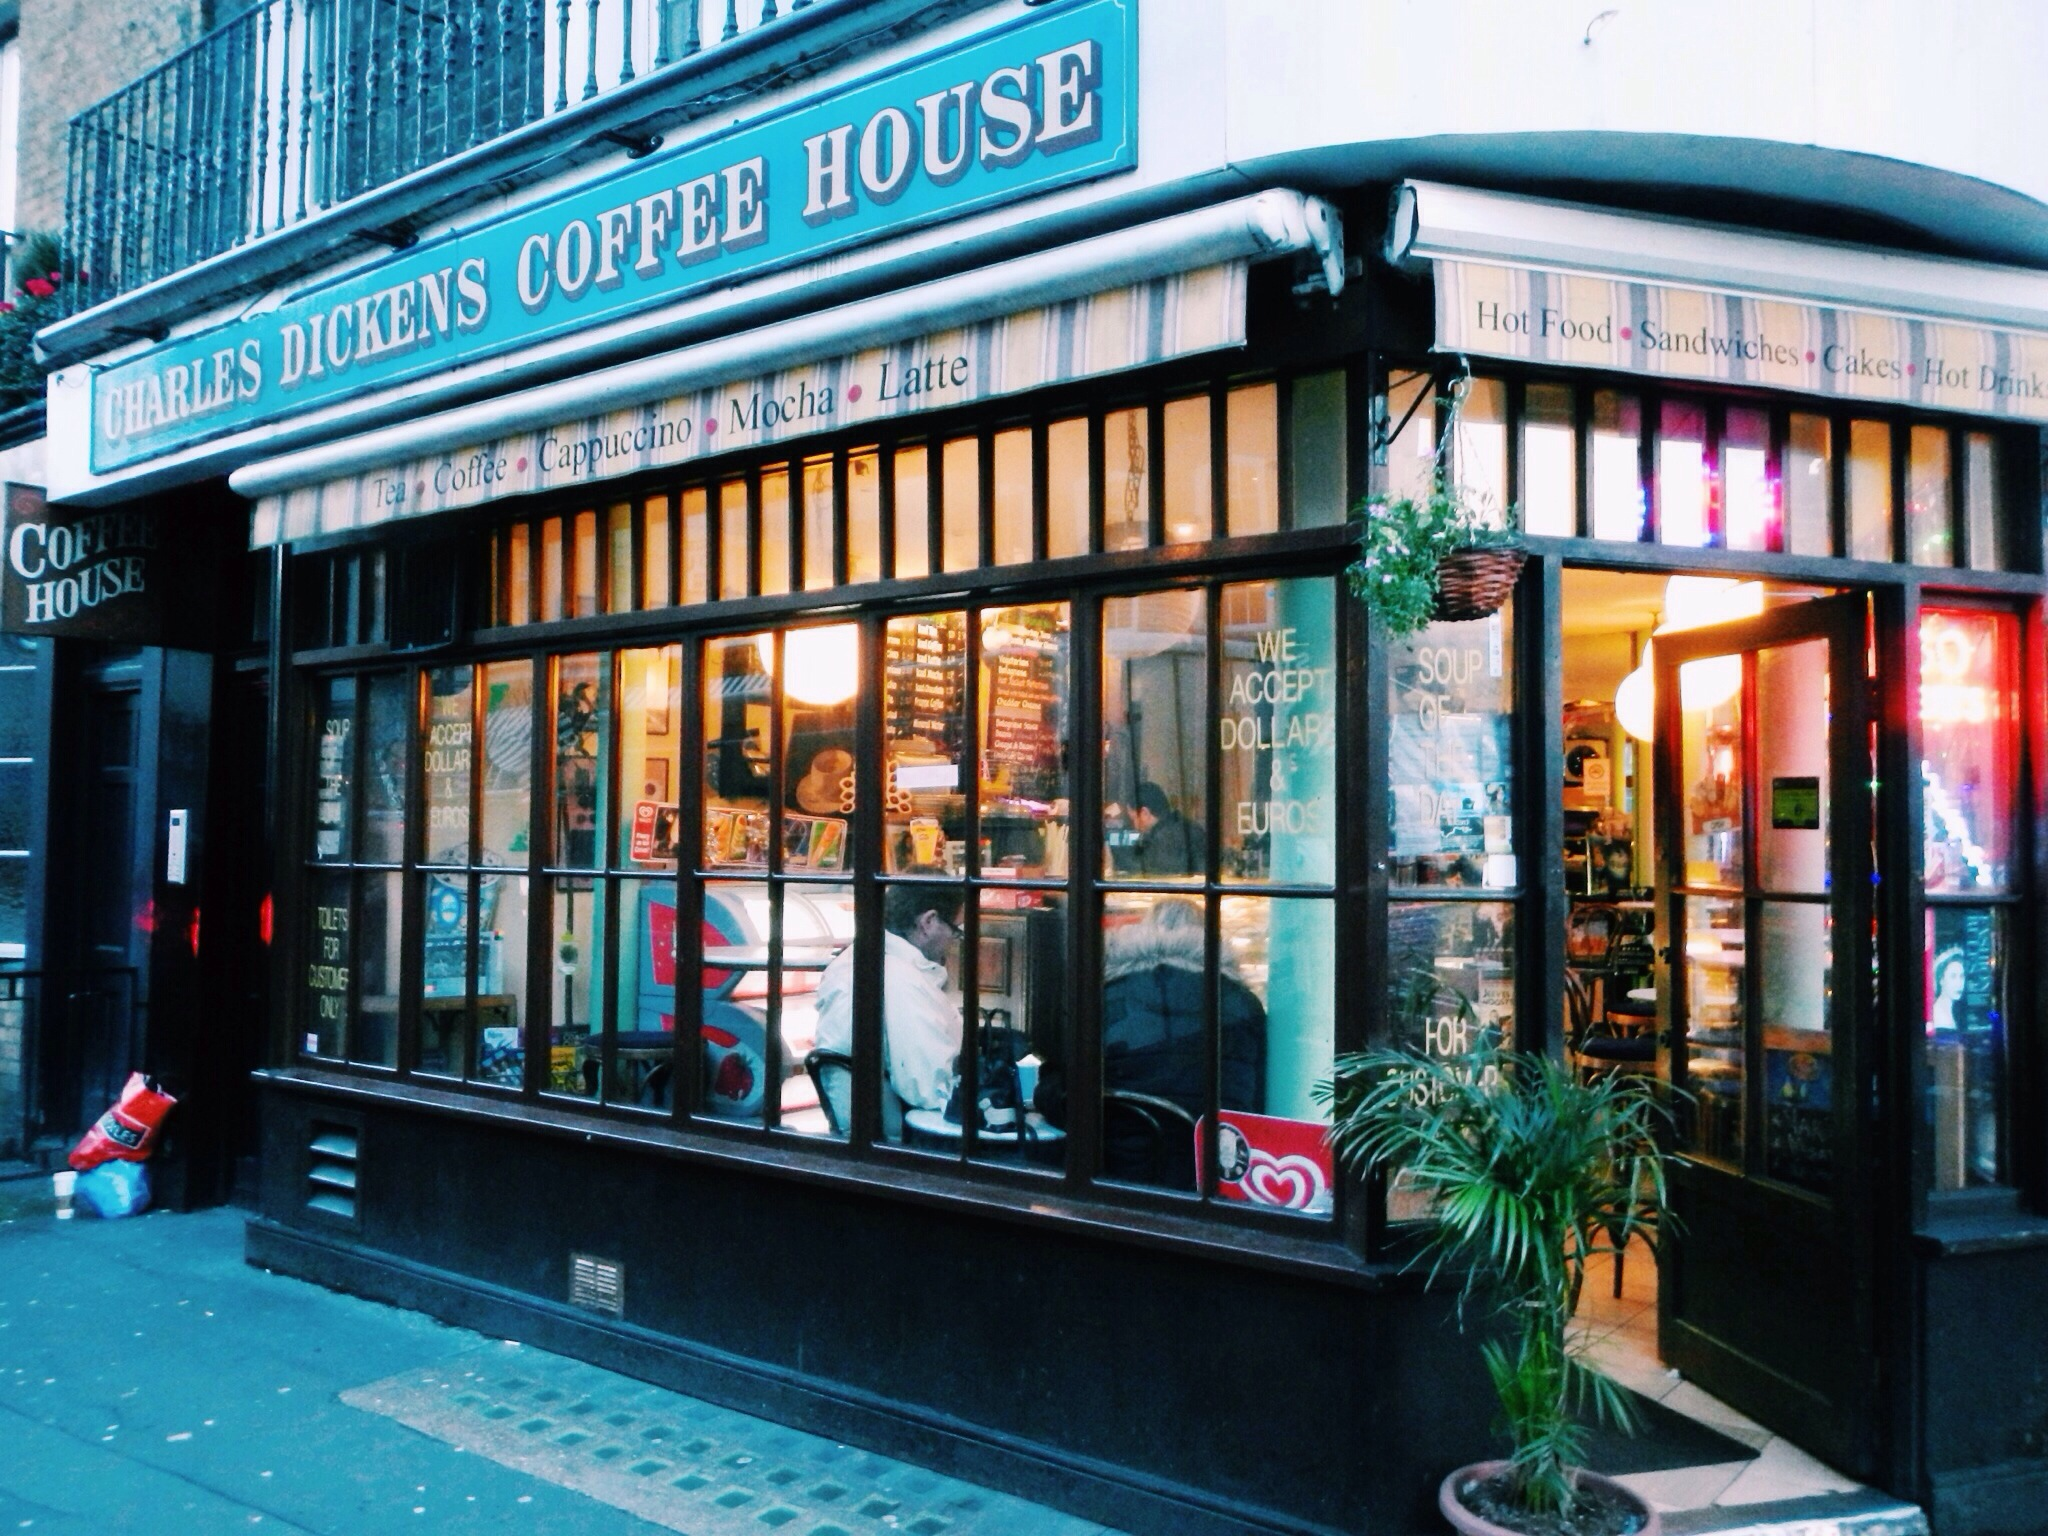 Charles Dickens Coffee House